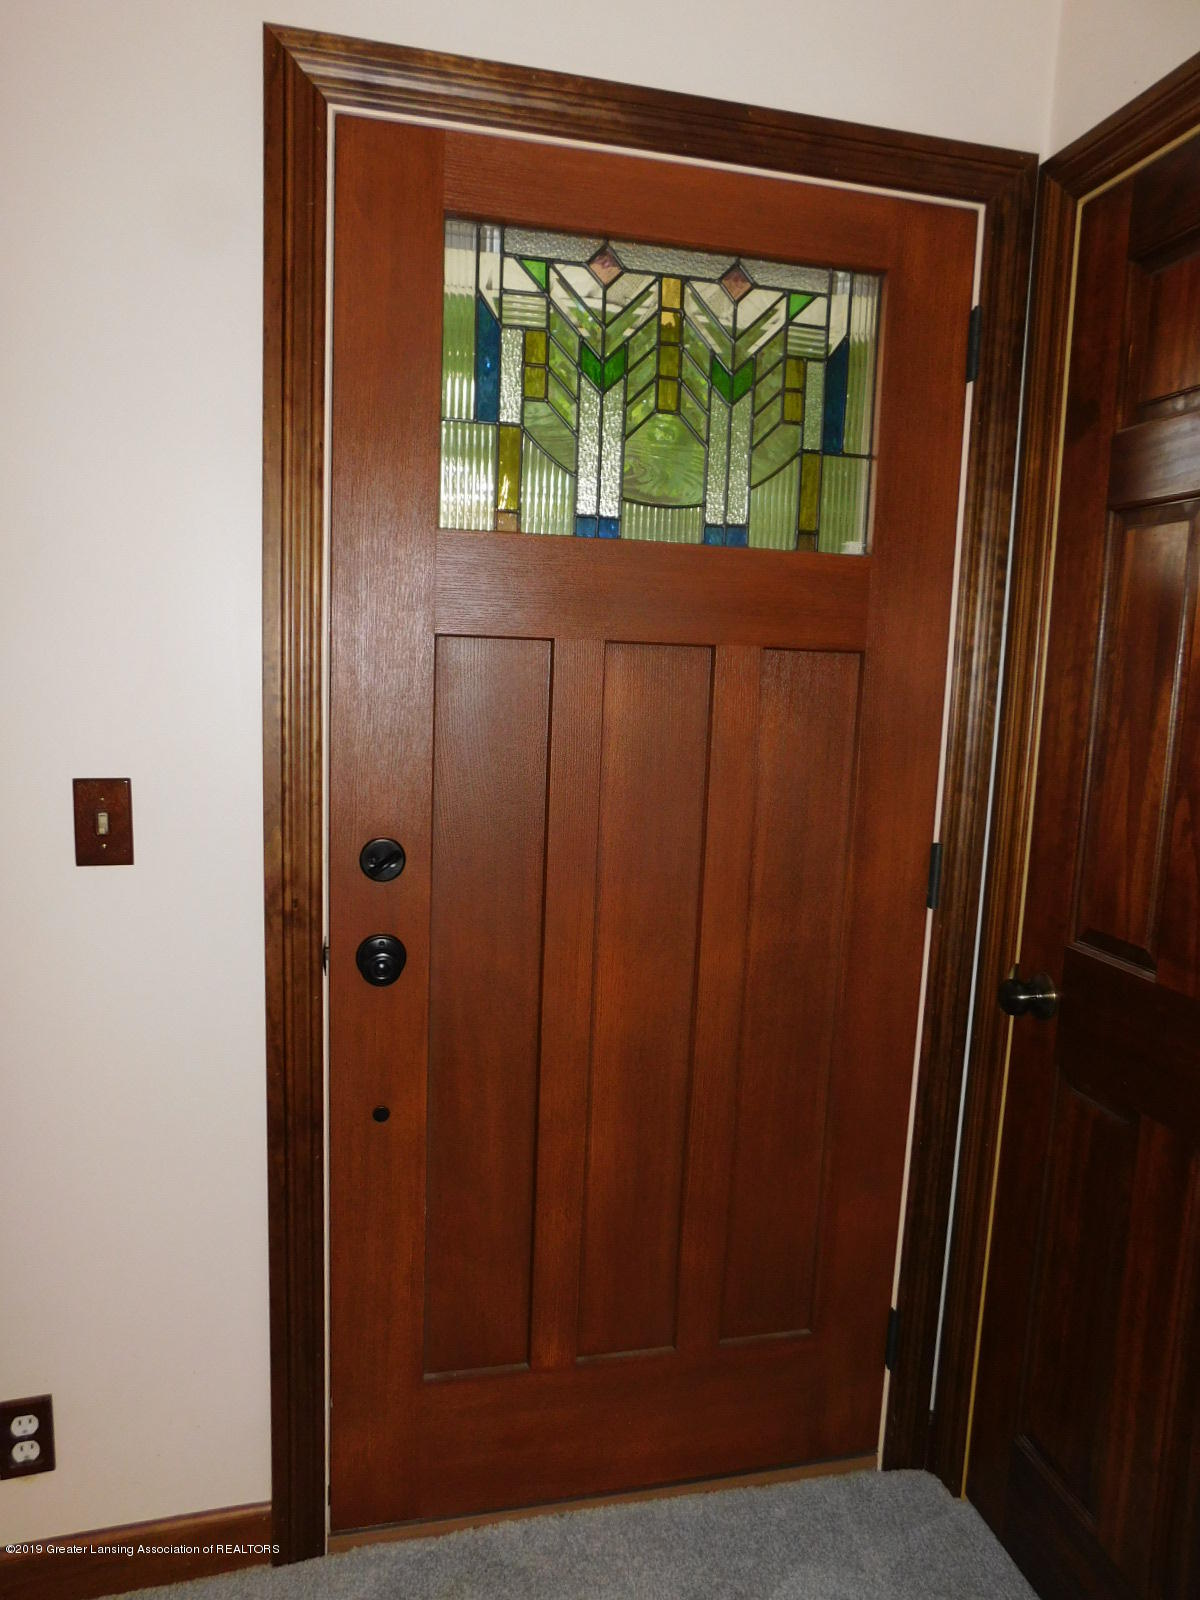 725 Merrill Ave - BEAUTIFUL FRONT DOOR - 5